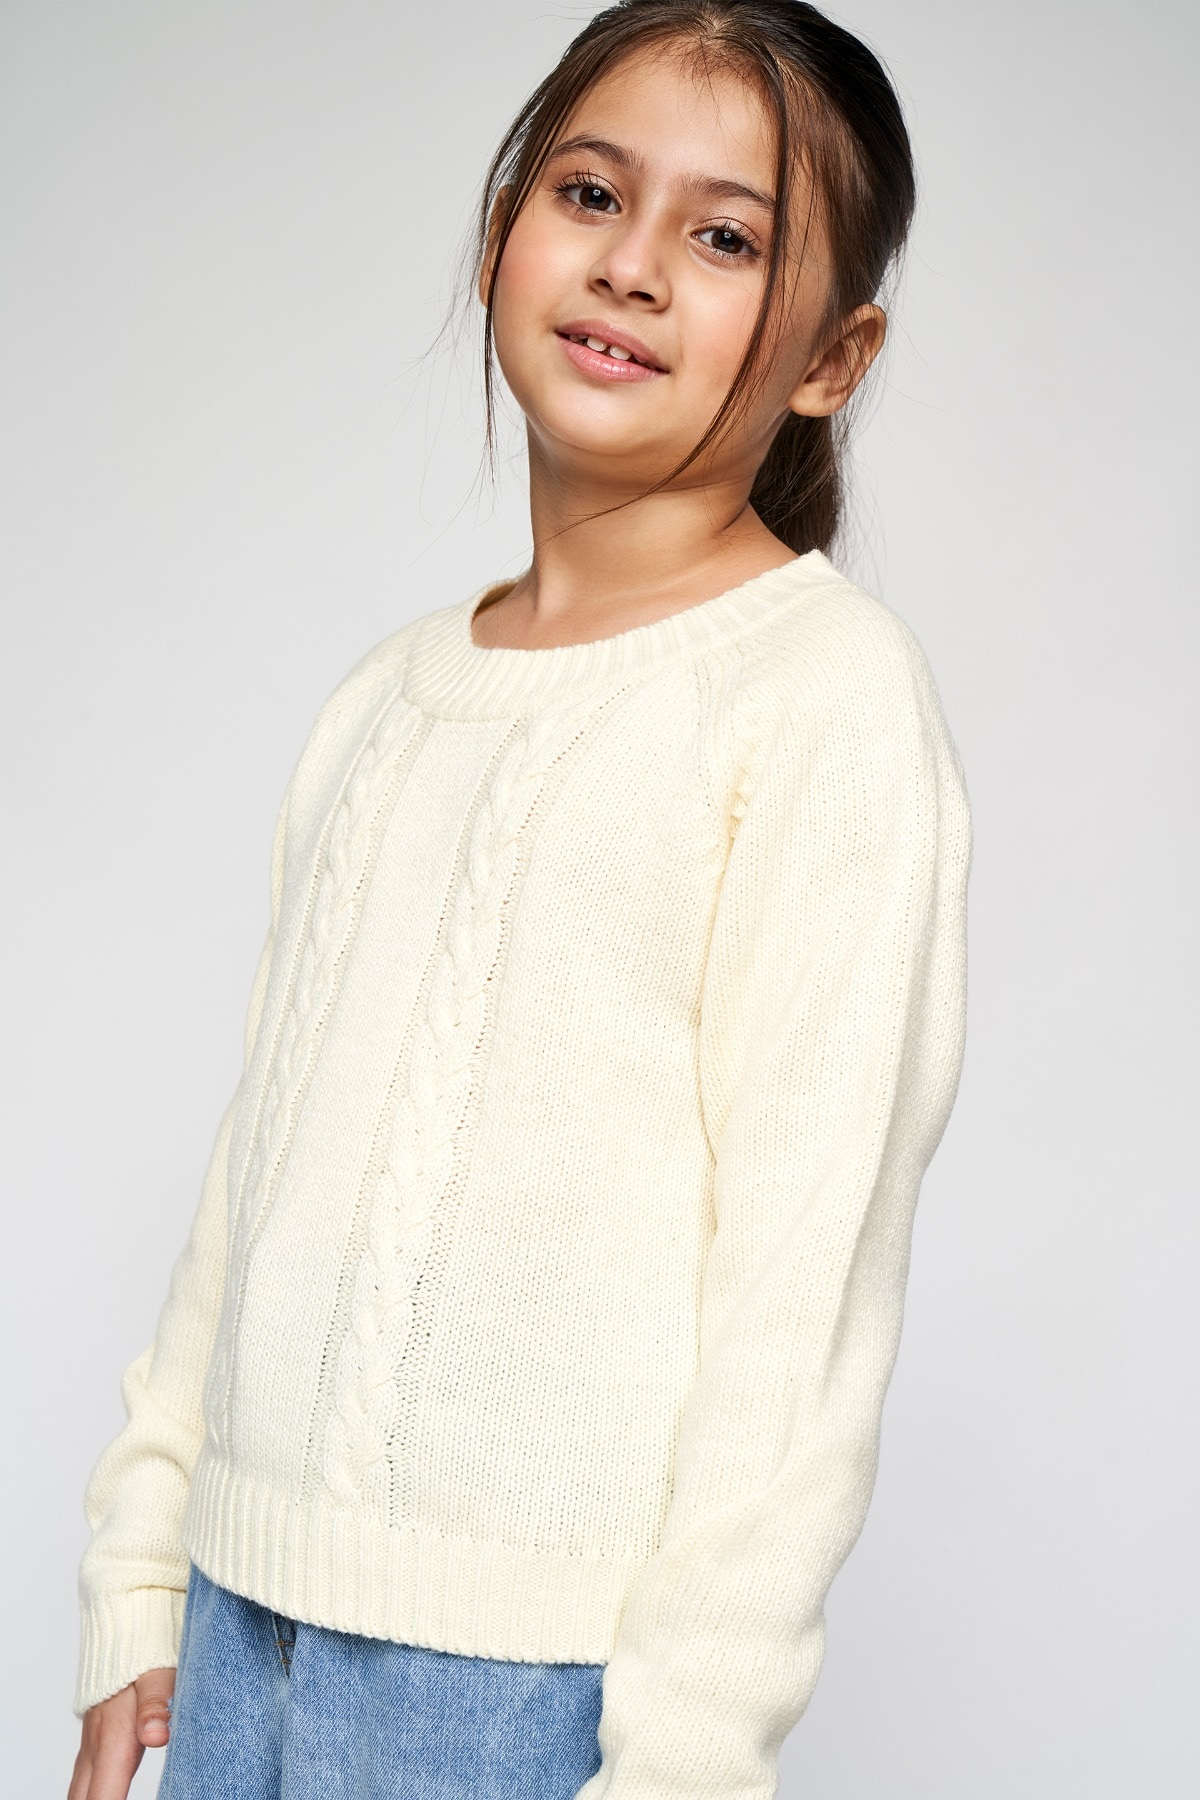 AND   White Solid Straight Top